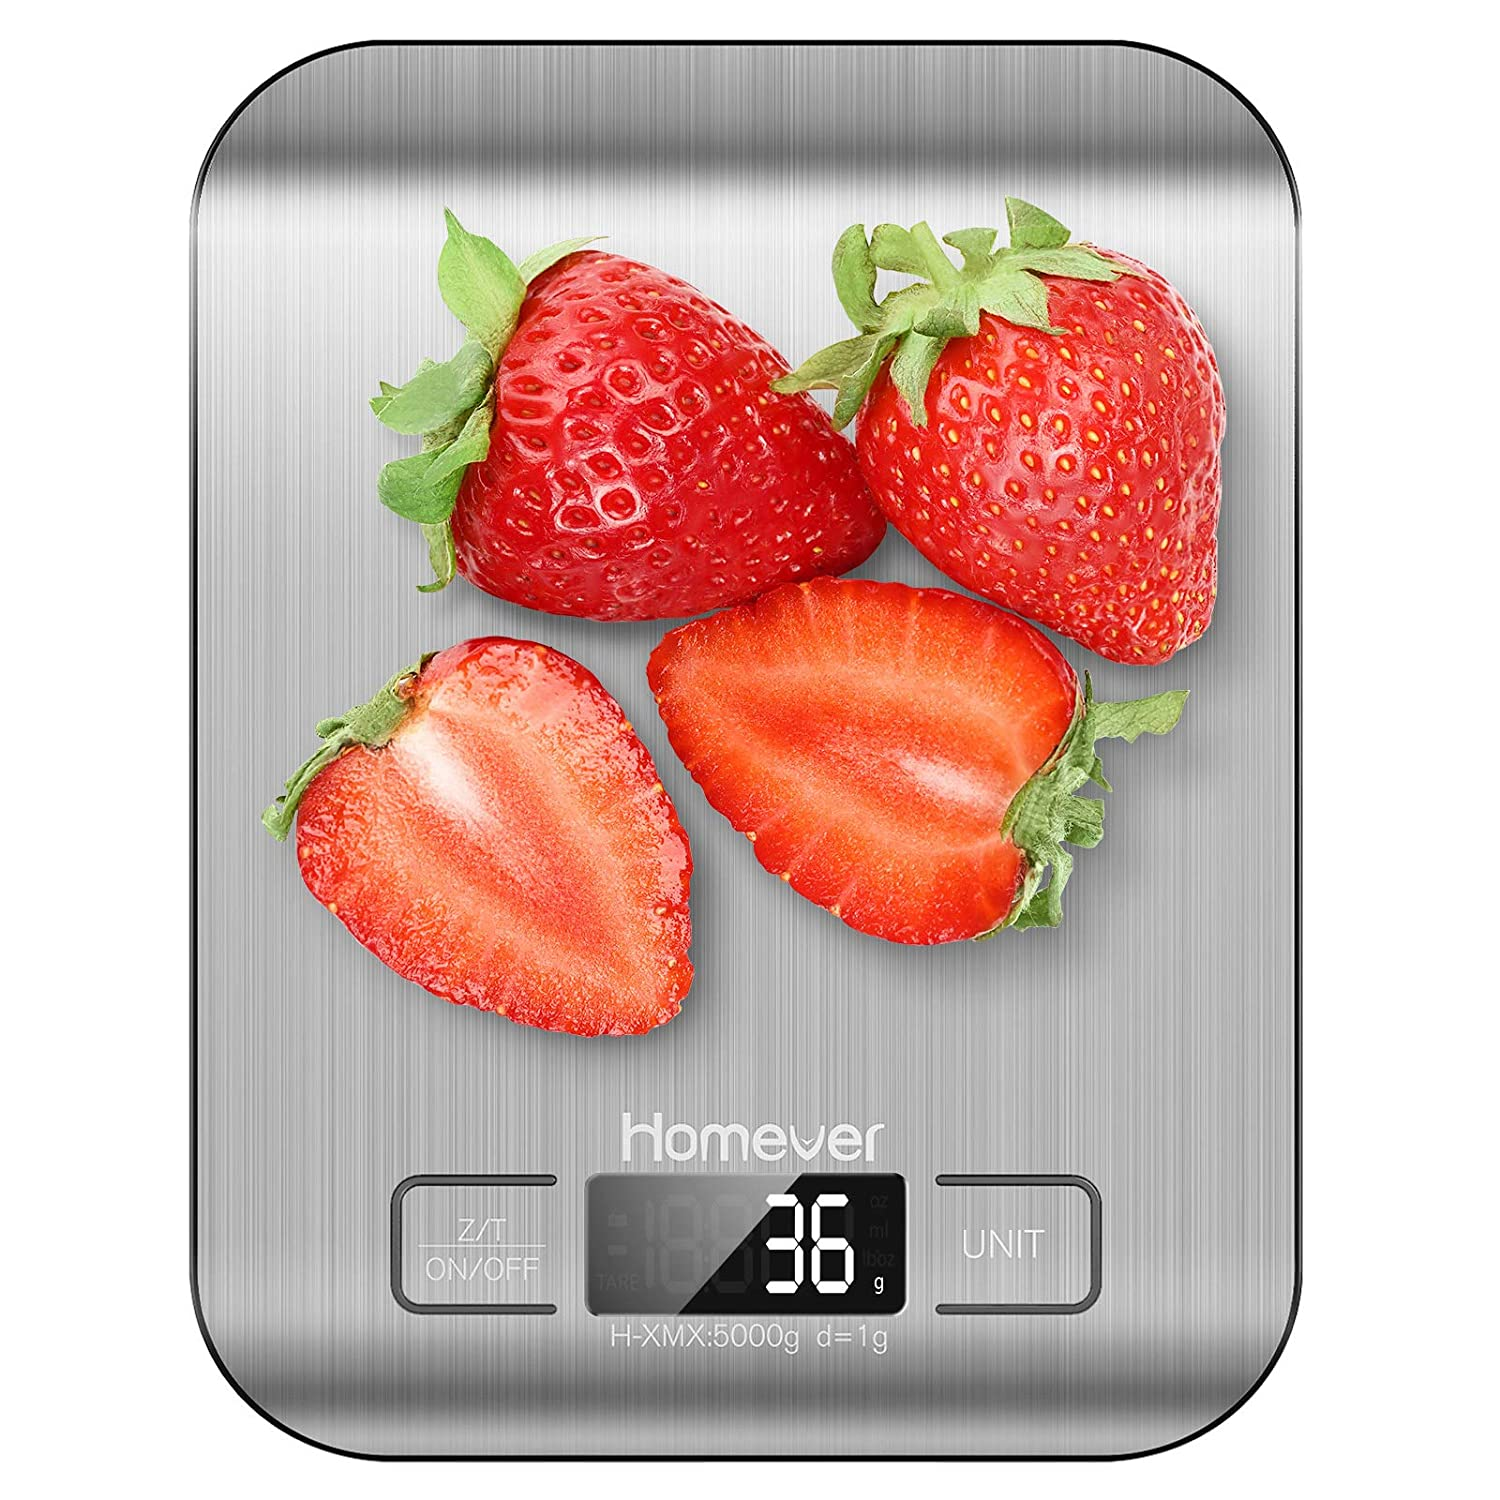 Food Scale, Homever 11lb Digital Kitchen Scale, Electronic Scale Weight Grams and oz for Baking Cooking, 0.05oz/1g Precise Graduation, Silver [Energy Class A++]